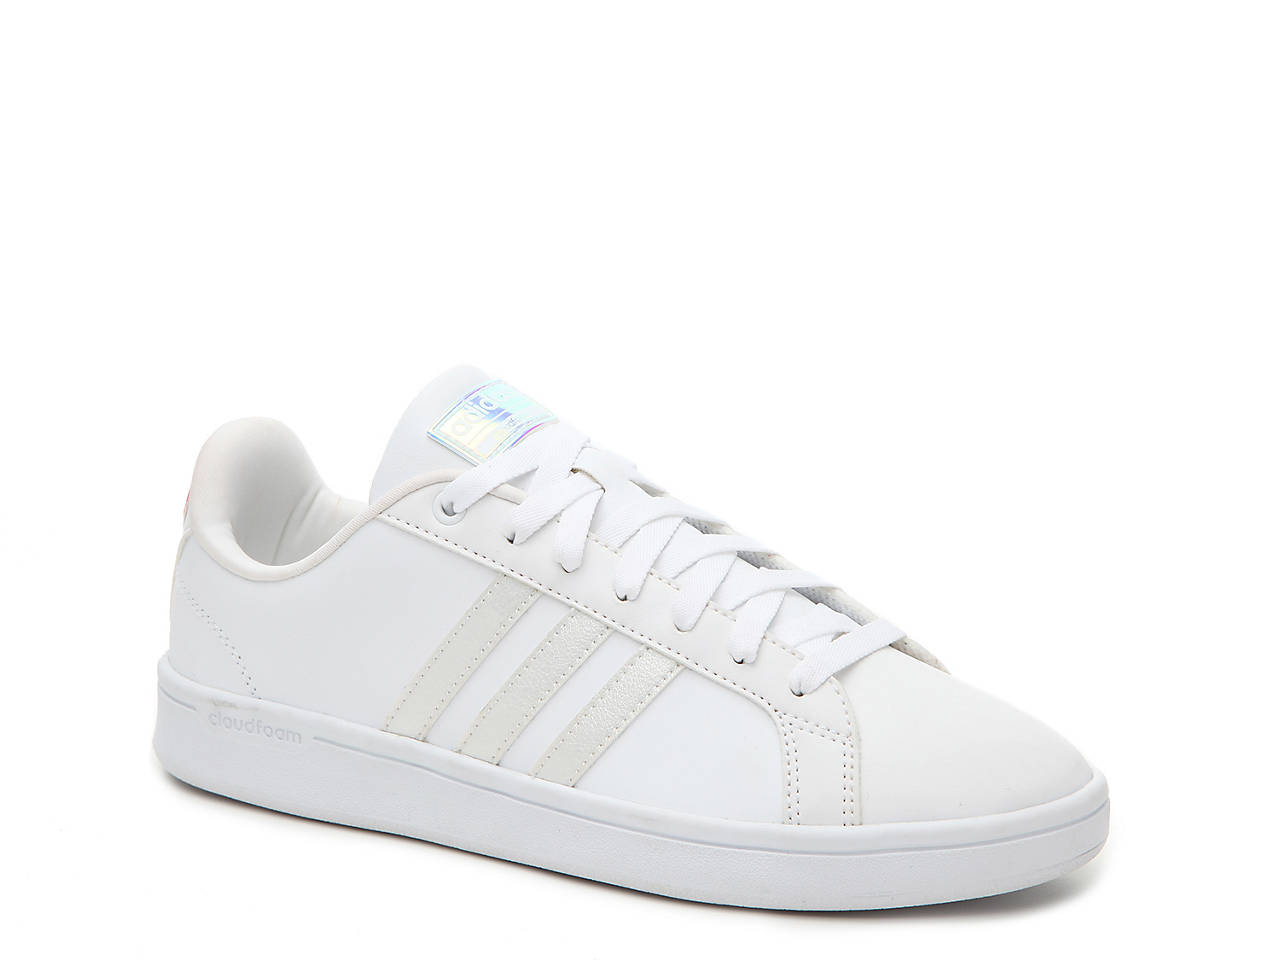 149aa63654c190 adidas NEO Advantage Sneaker - Women s Women s Shoes